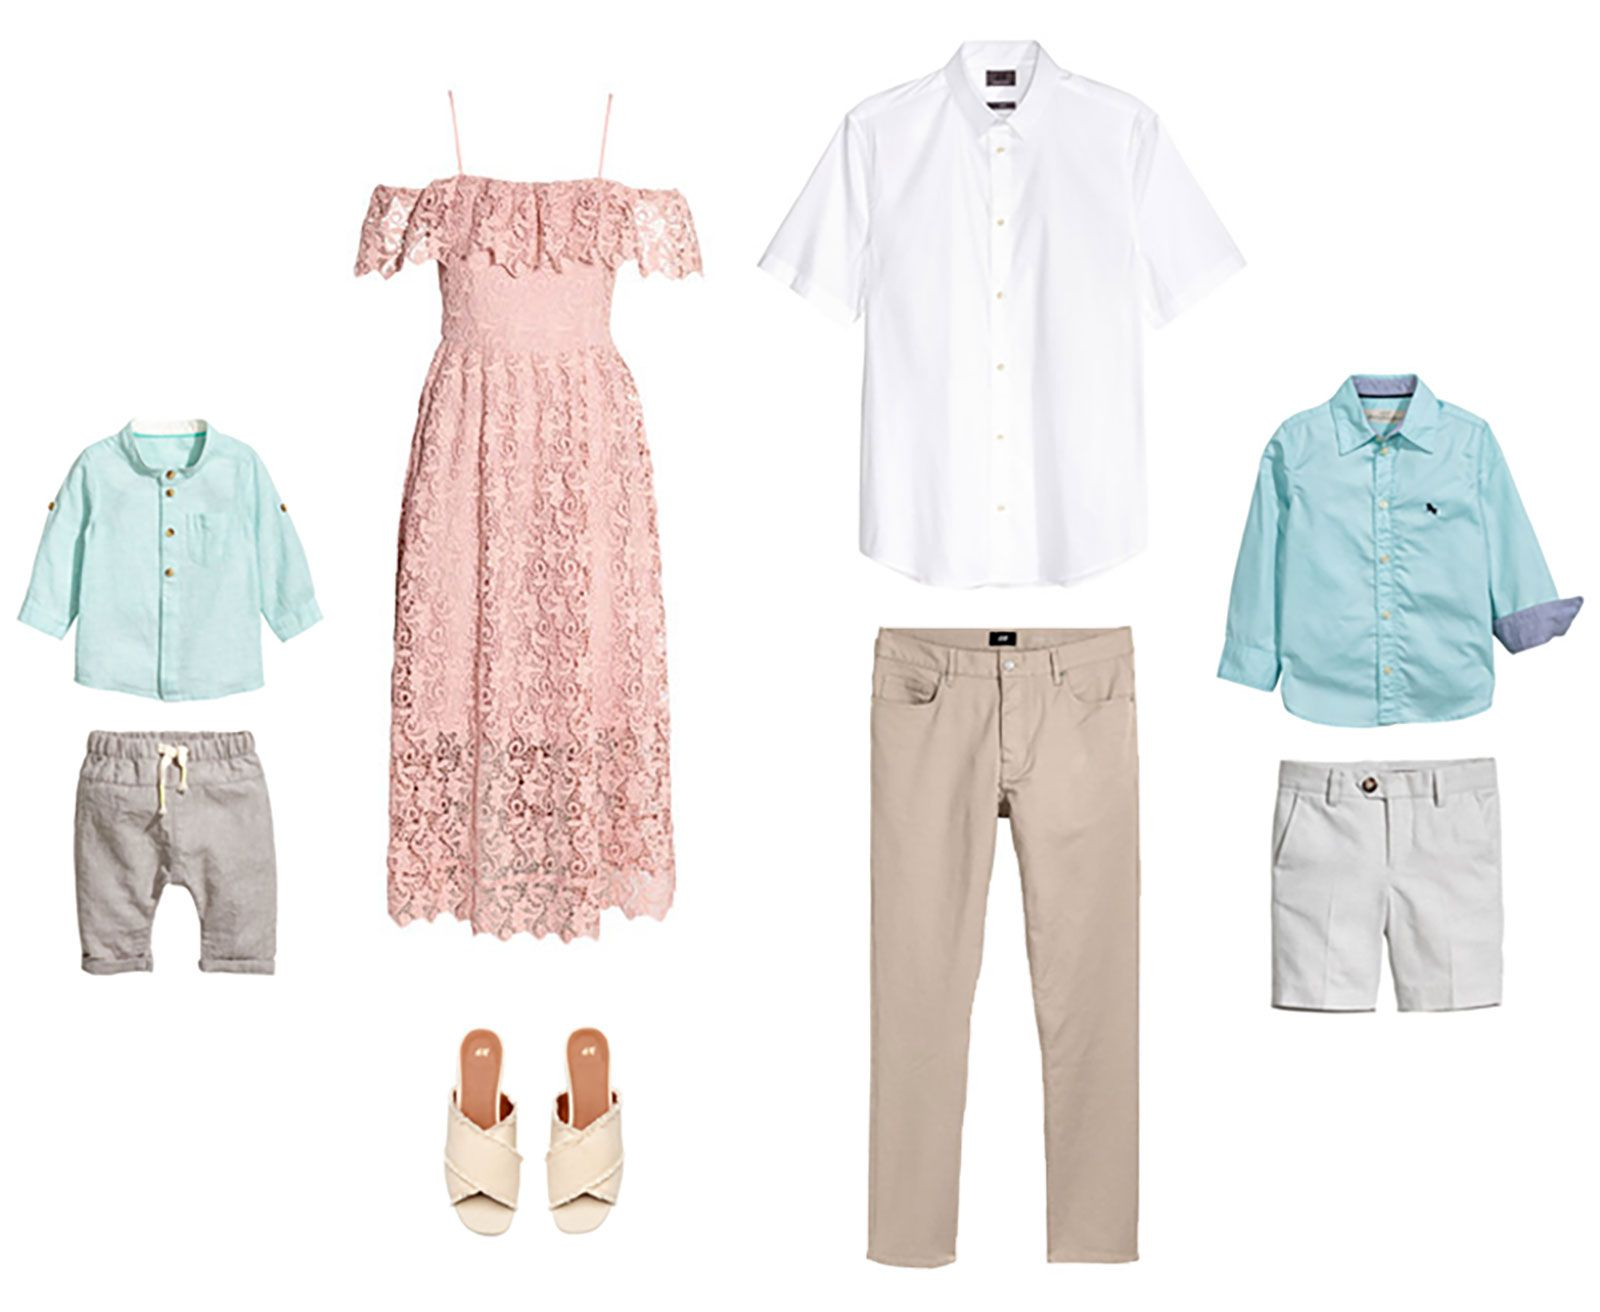 BB's Weekly Link Round Up: Weekend Sales, A Family Photo Outfit Idea for Easter and More #familyphotooutfits